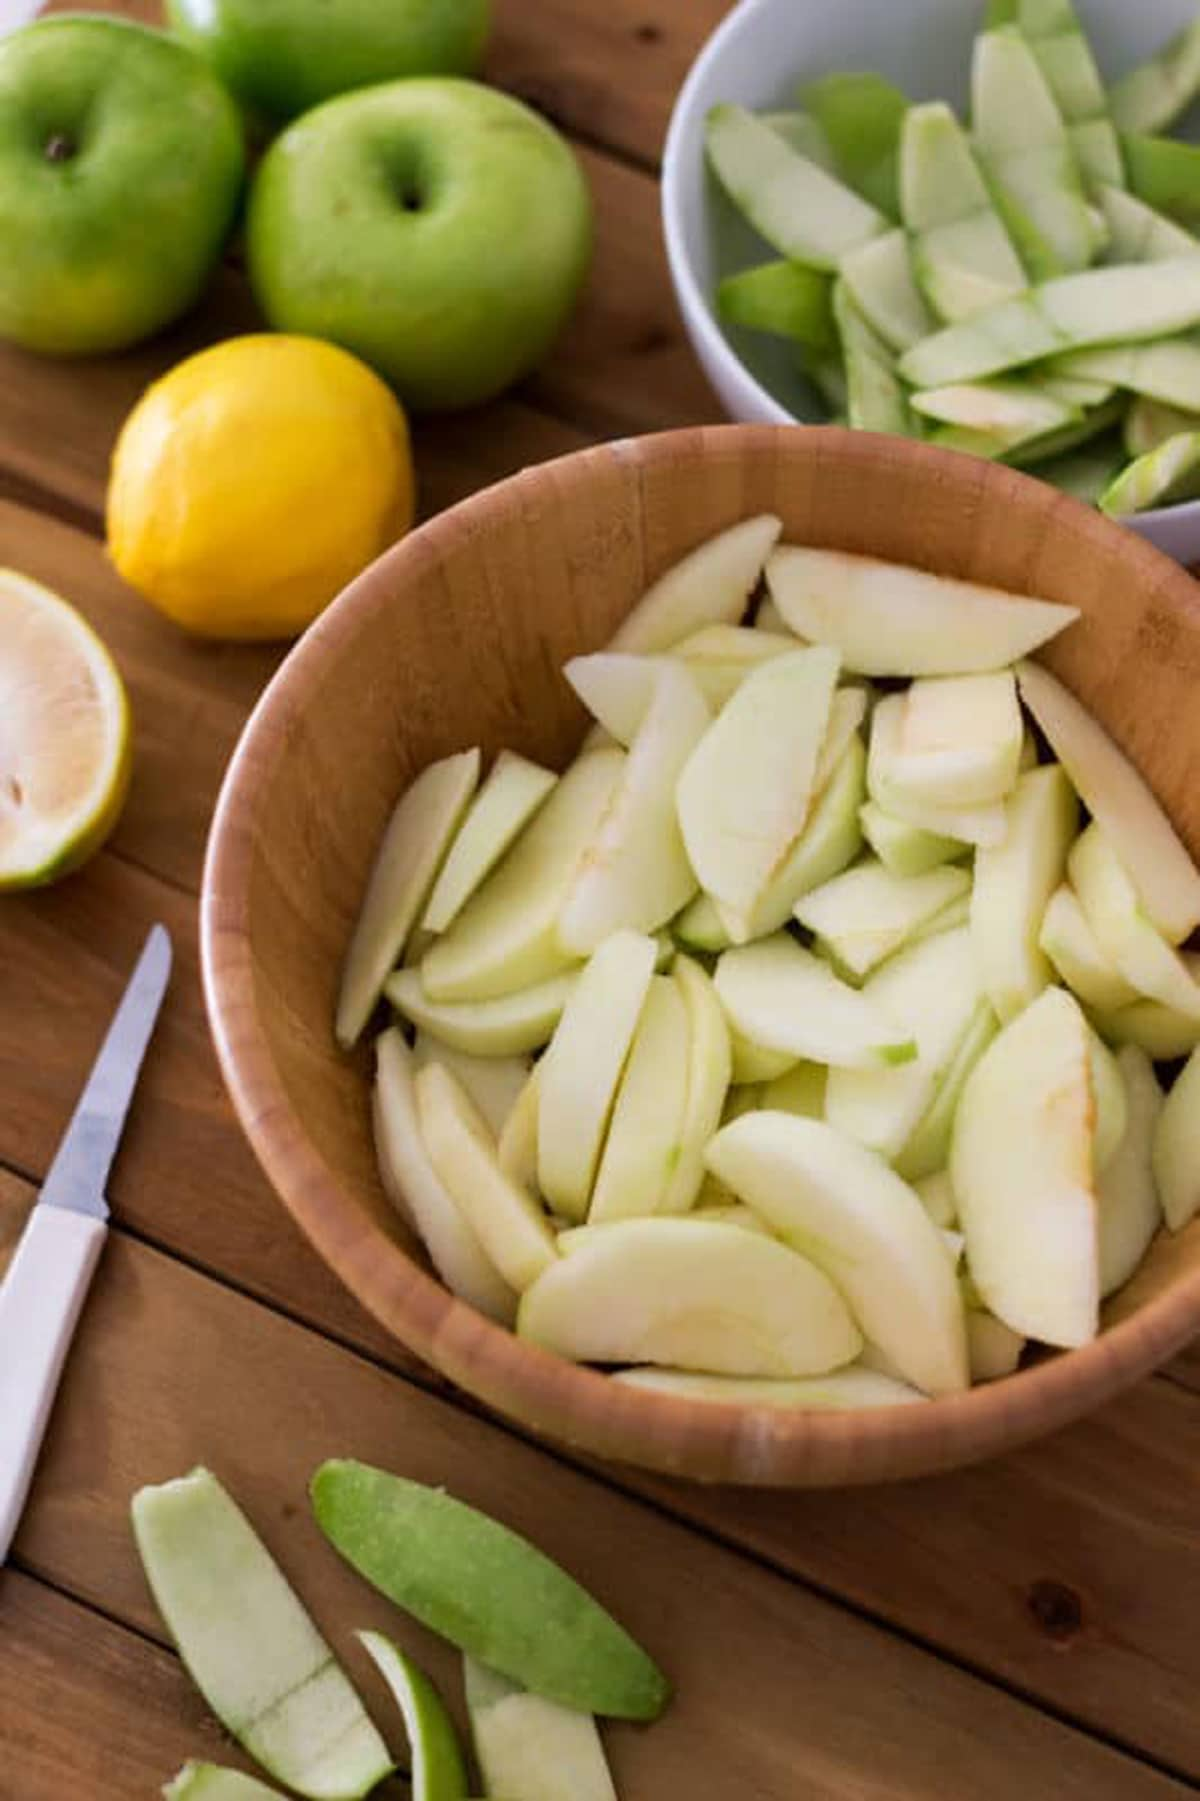 Wooden bowl containing sliced Granny Smith apples sitting on a wood table.